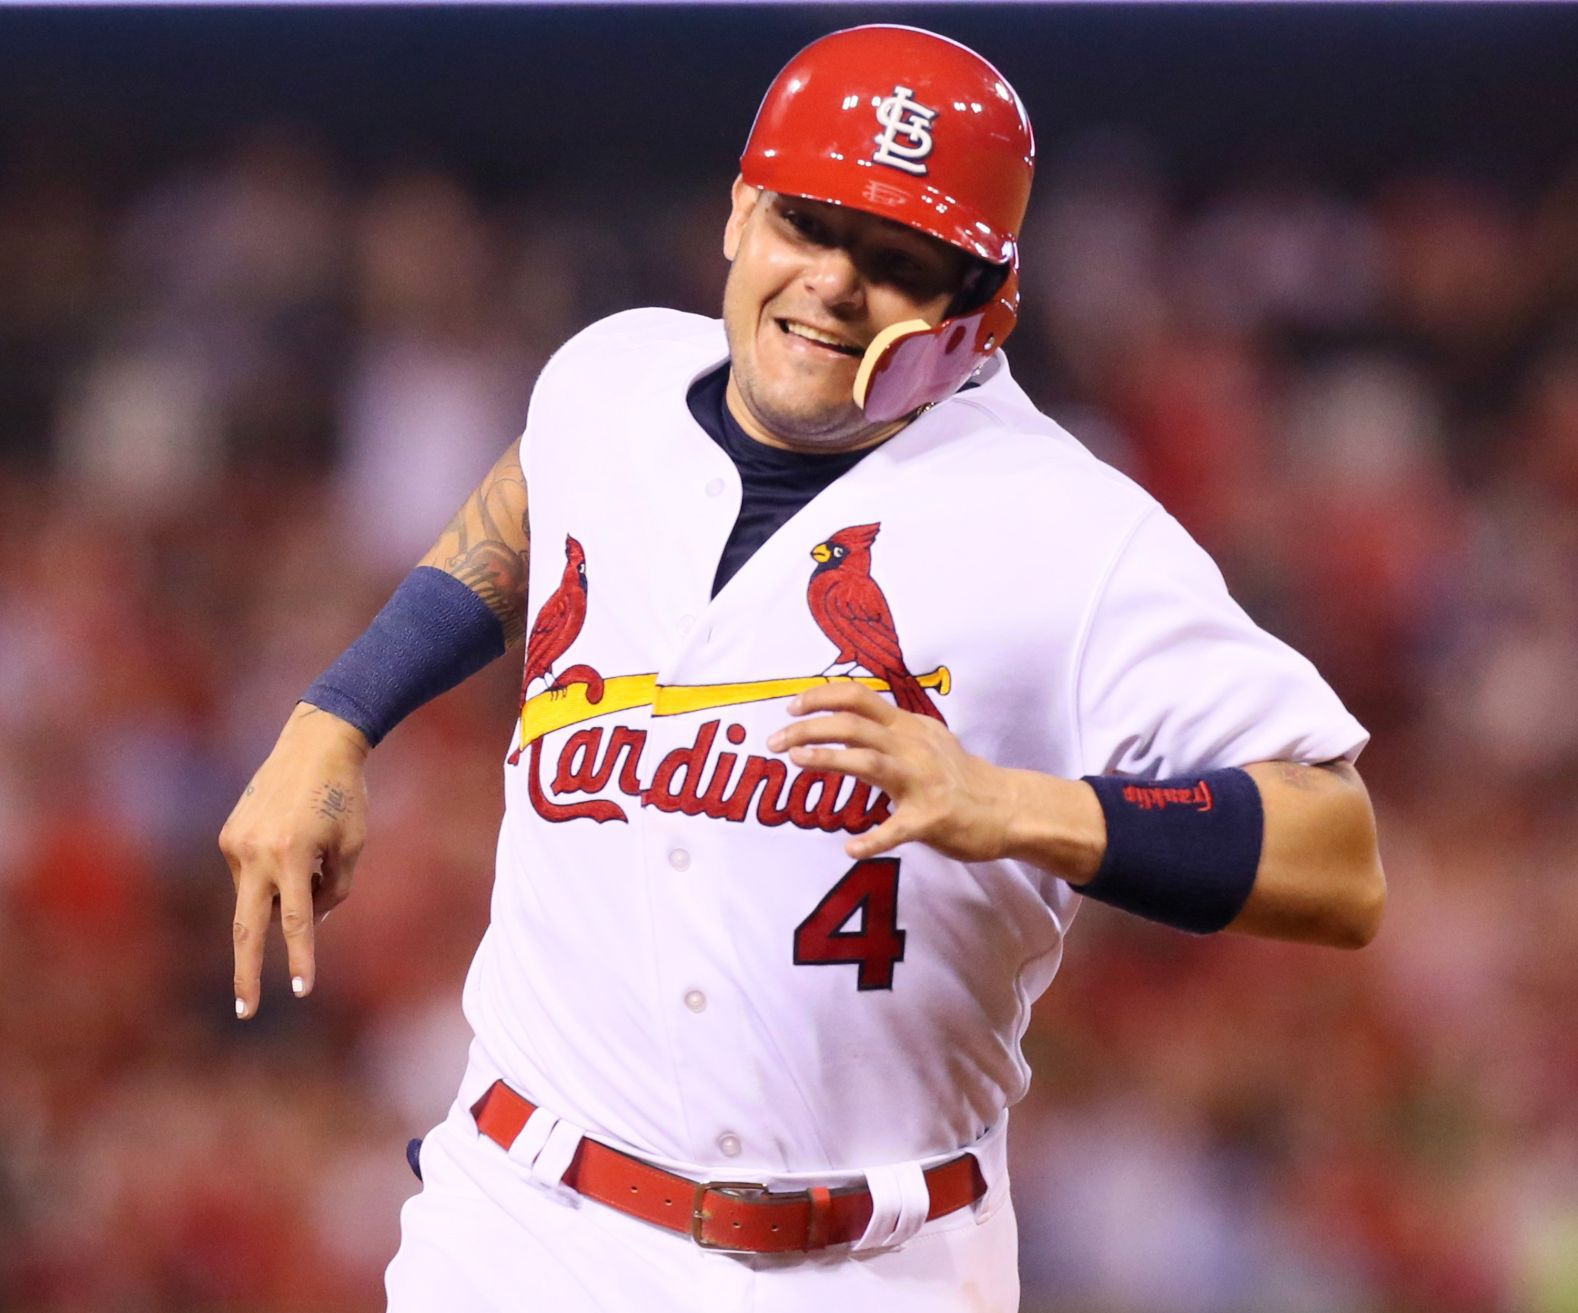 Yadier Molina fires back at Mike Matheny over comments about his workload